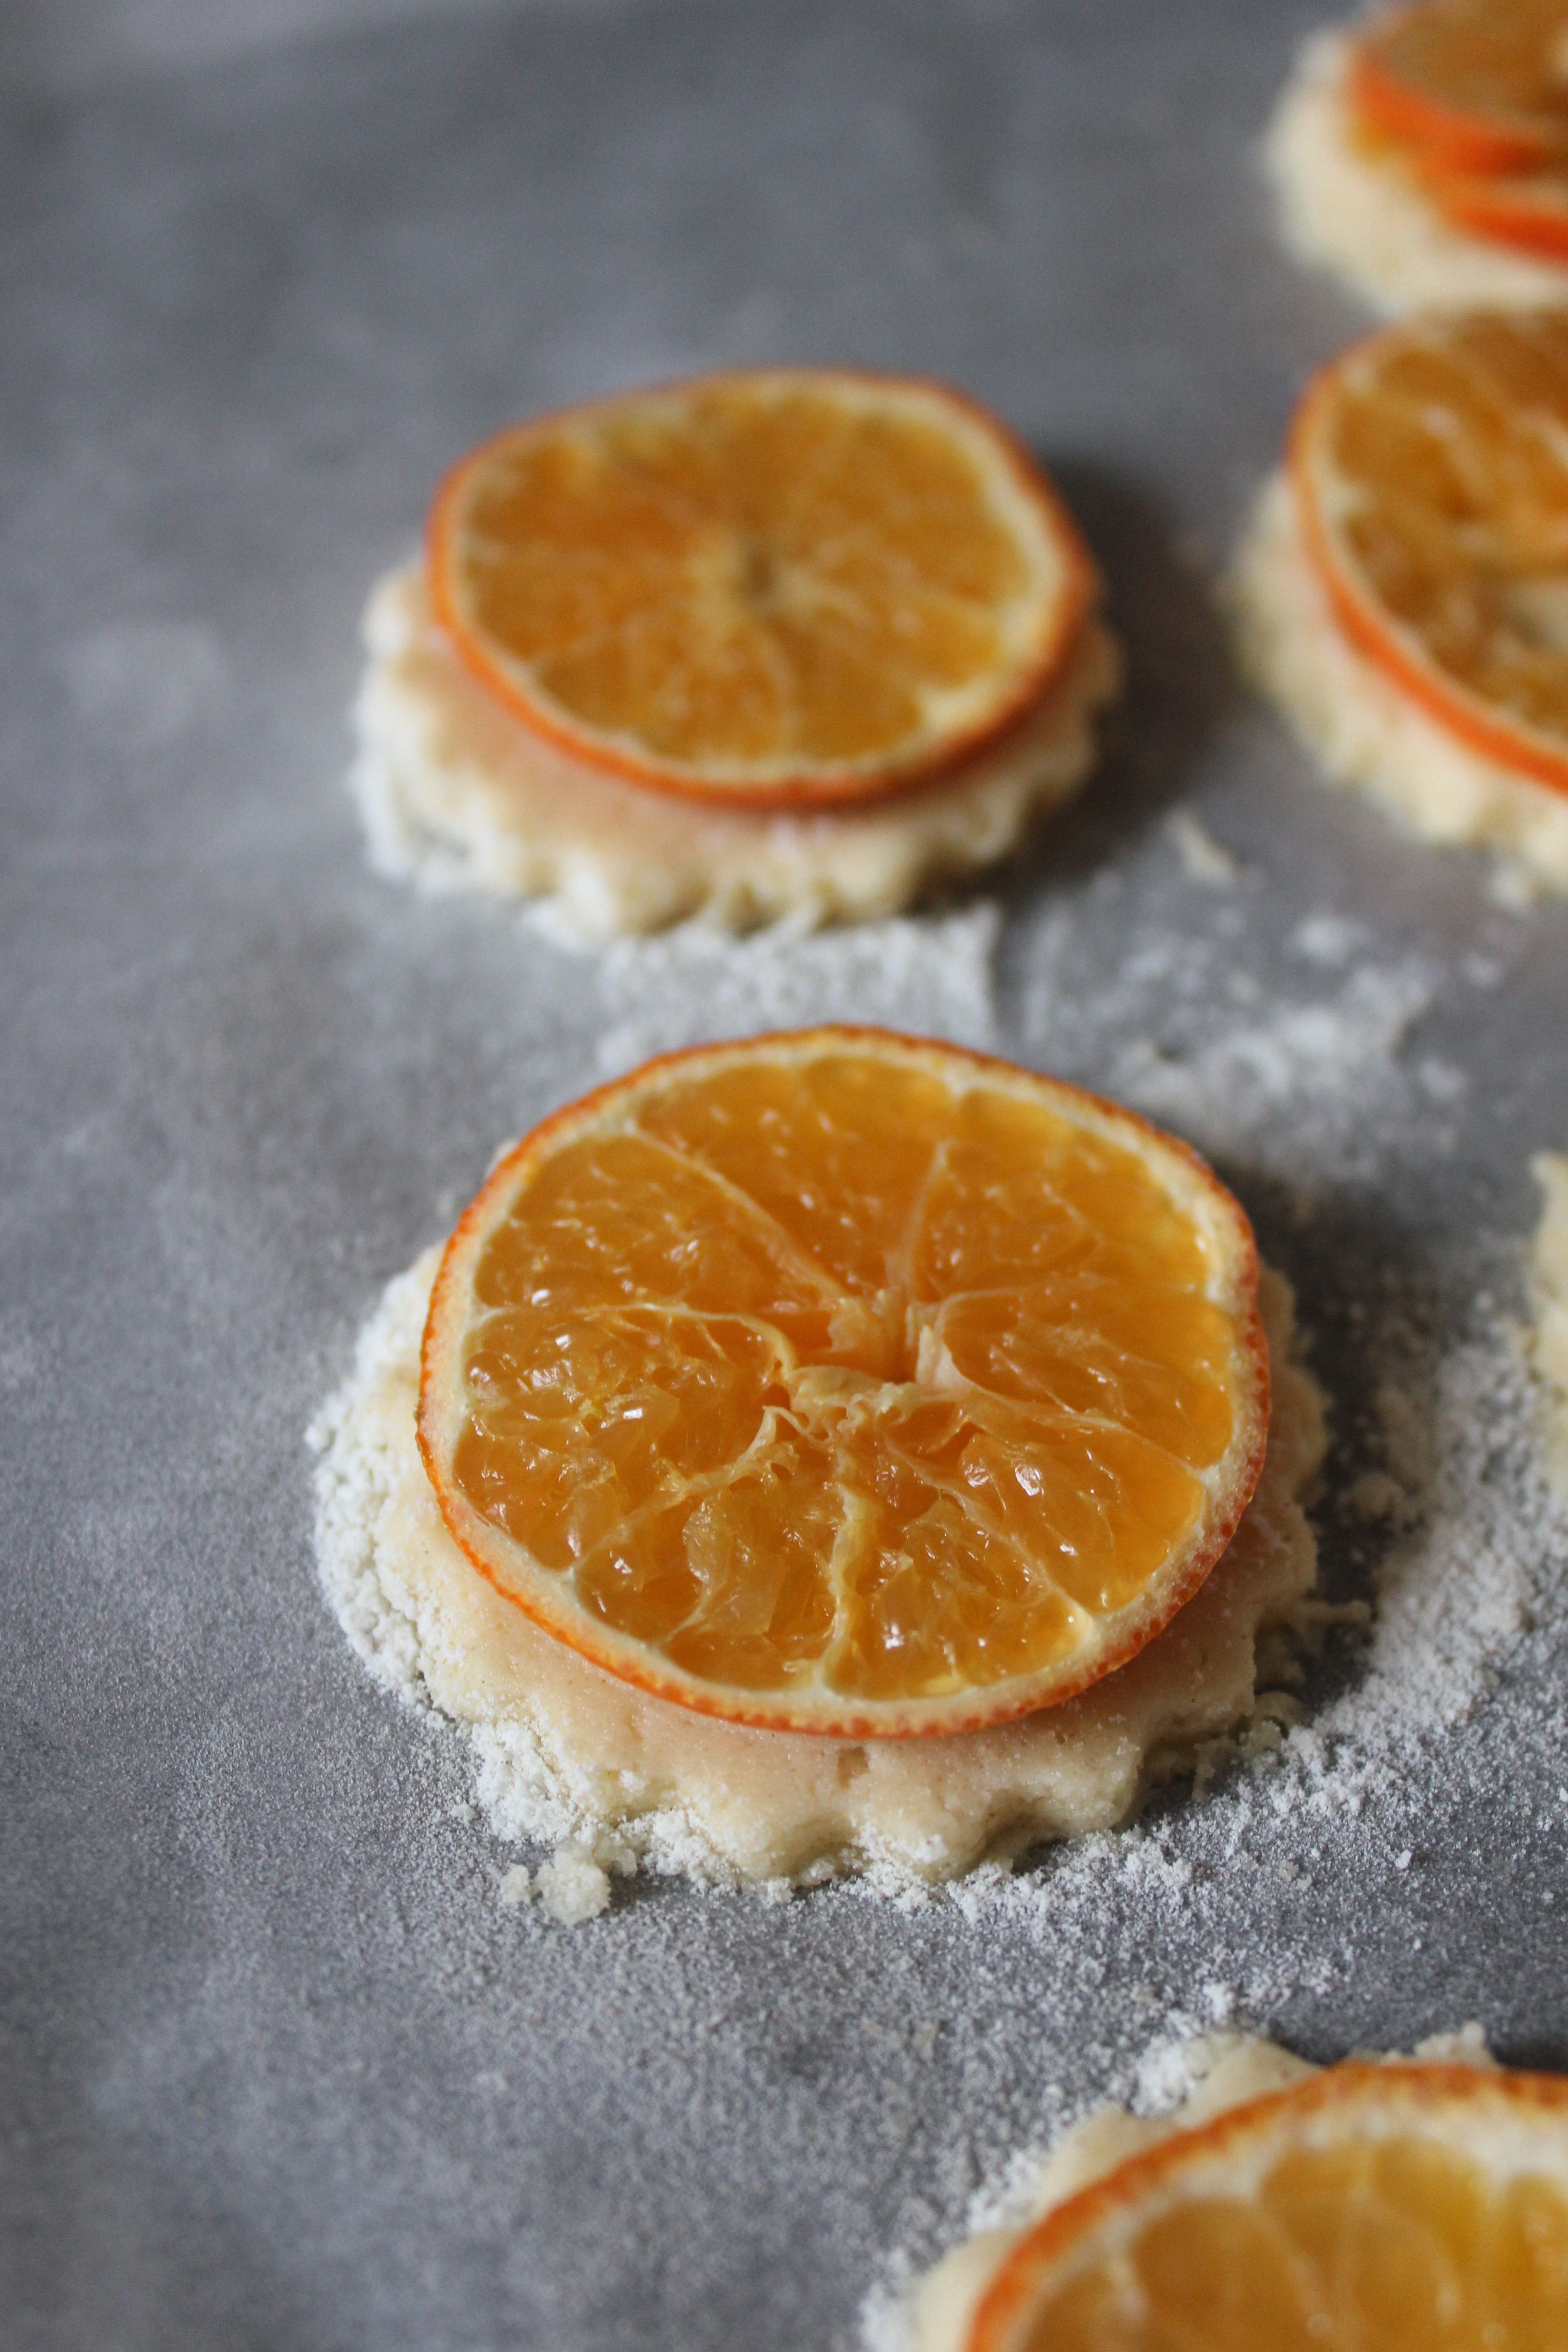 Glazed clementine and cardamom shortbread